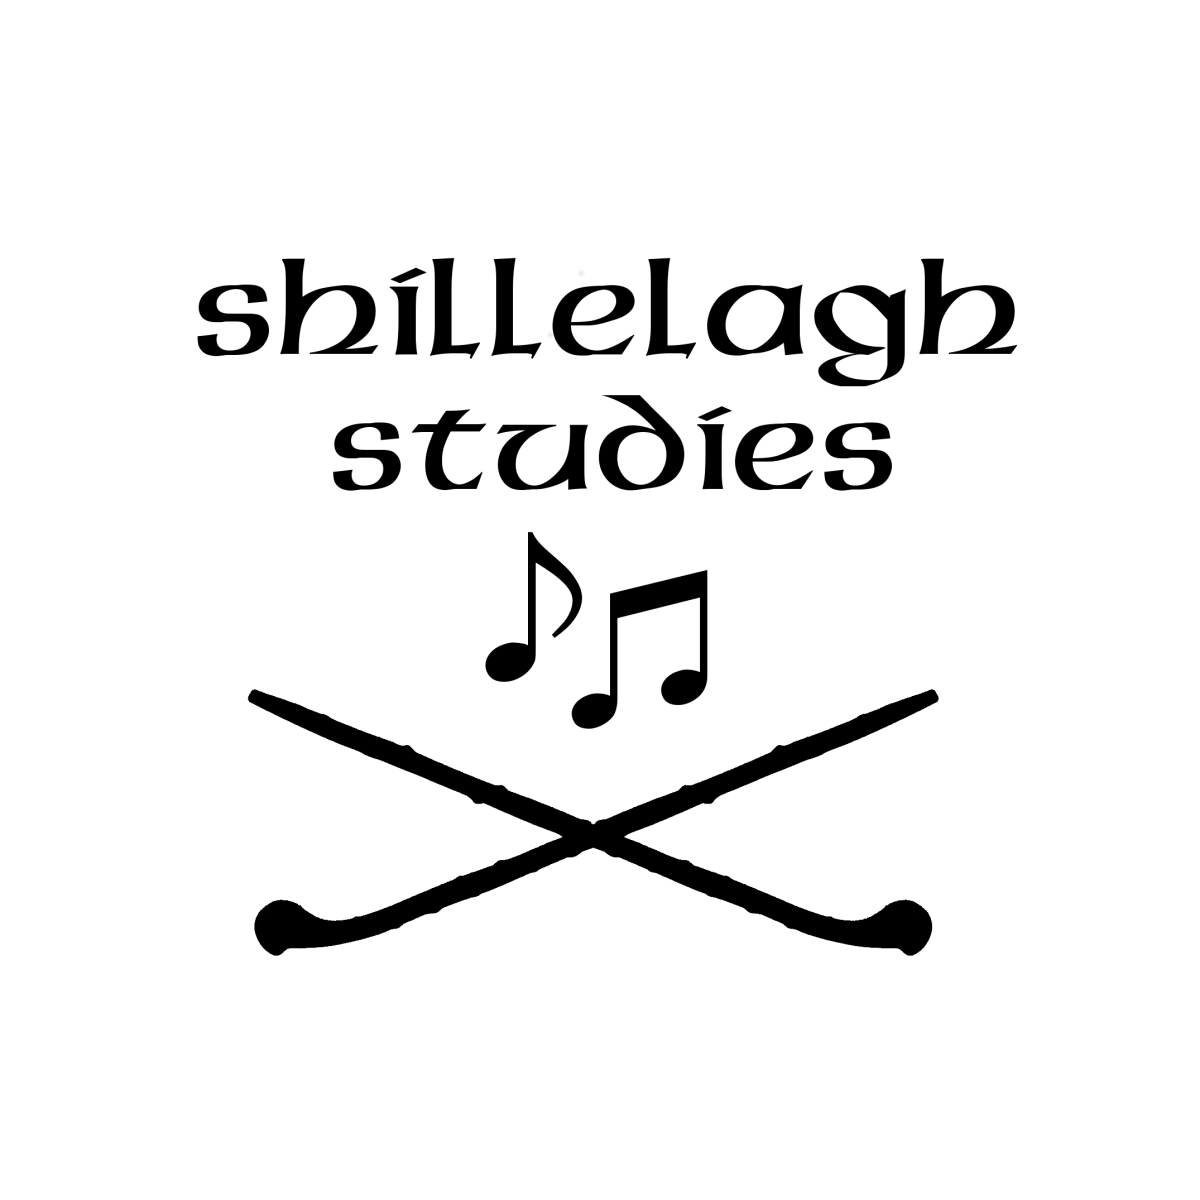 Shillelagh Studies: New Research Project on Music and